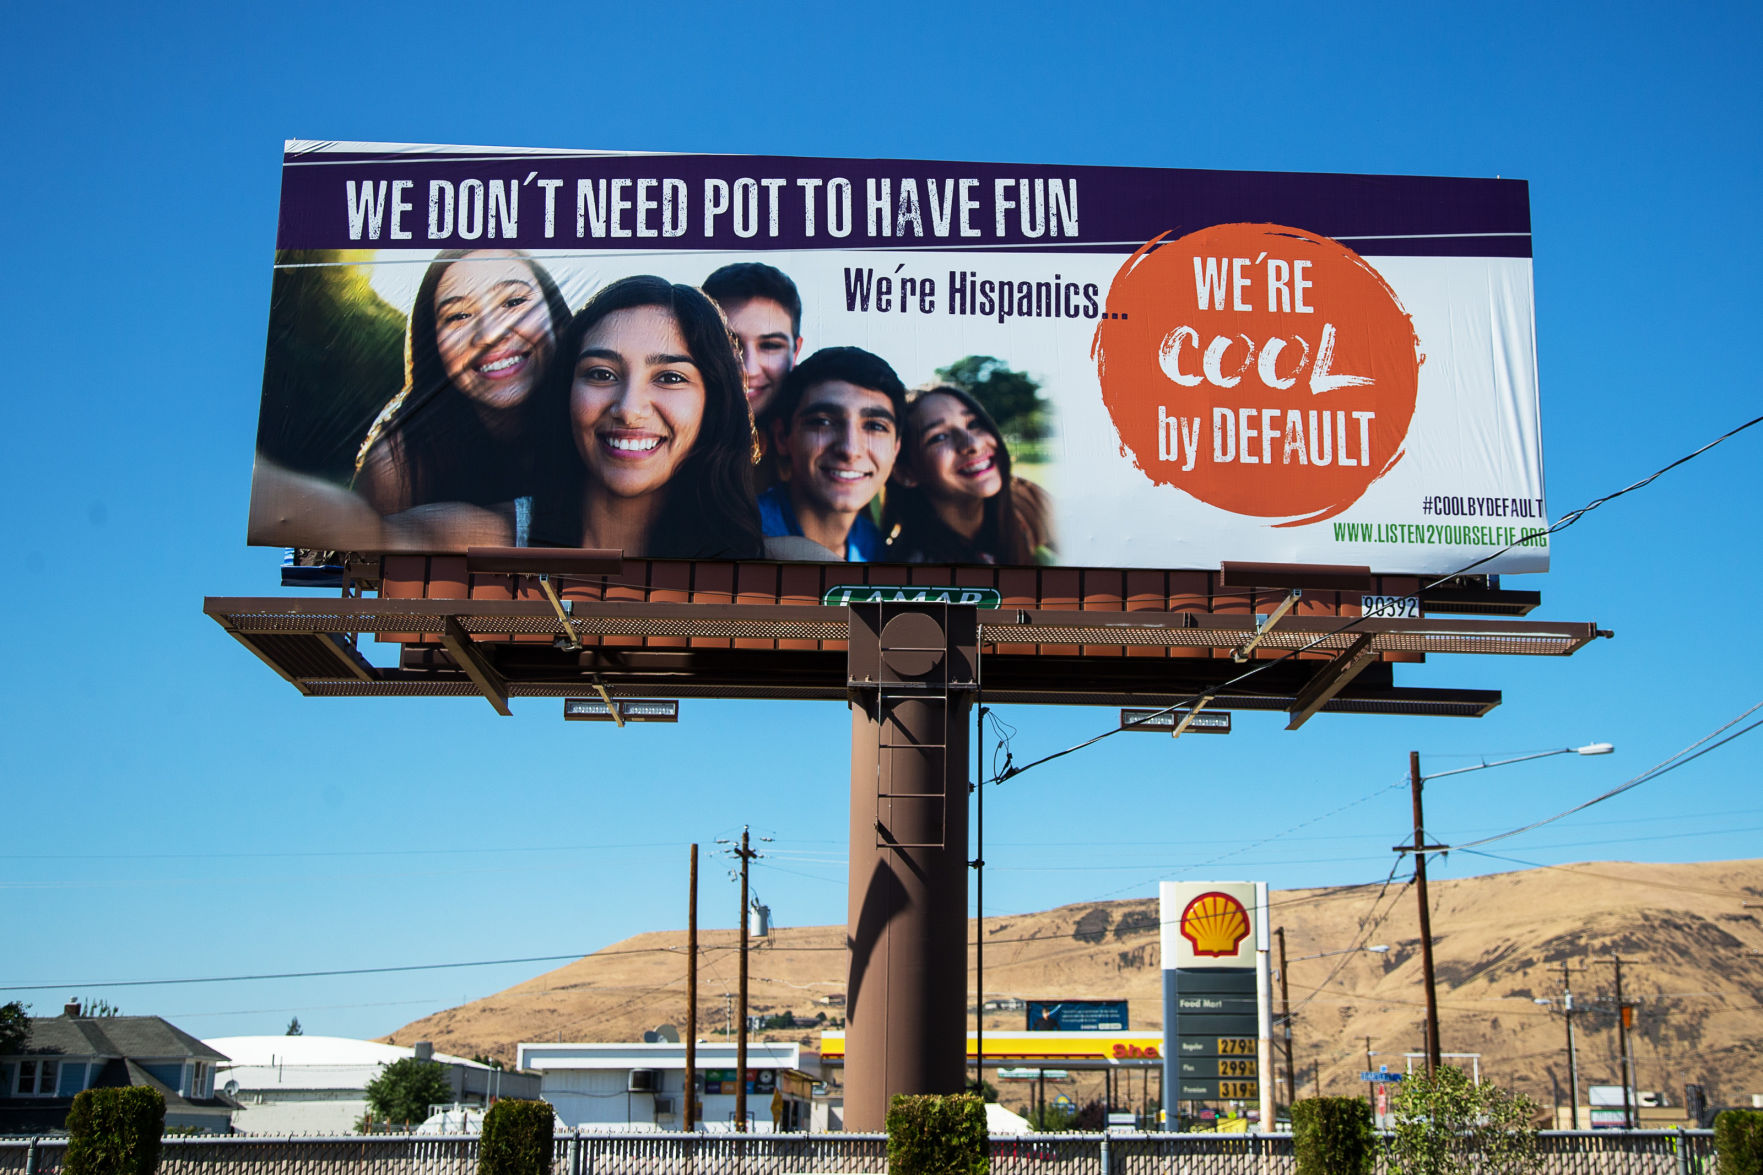 Washington Health Dept. Receives Community Backlash Over Yakima Billboard